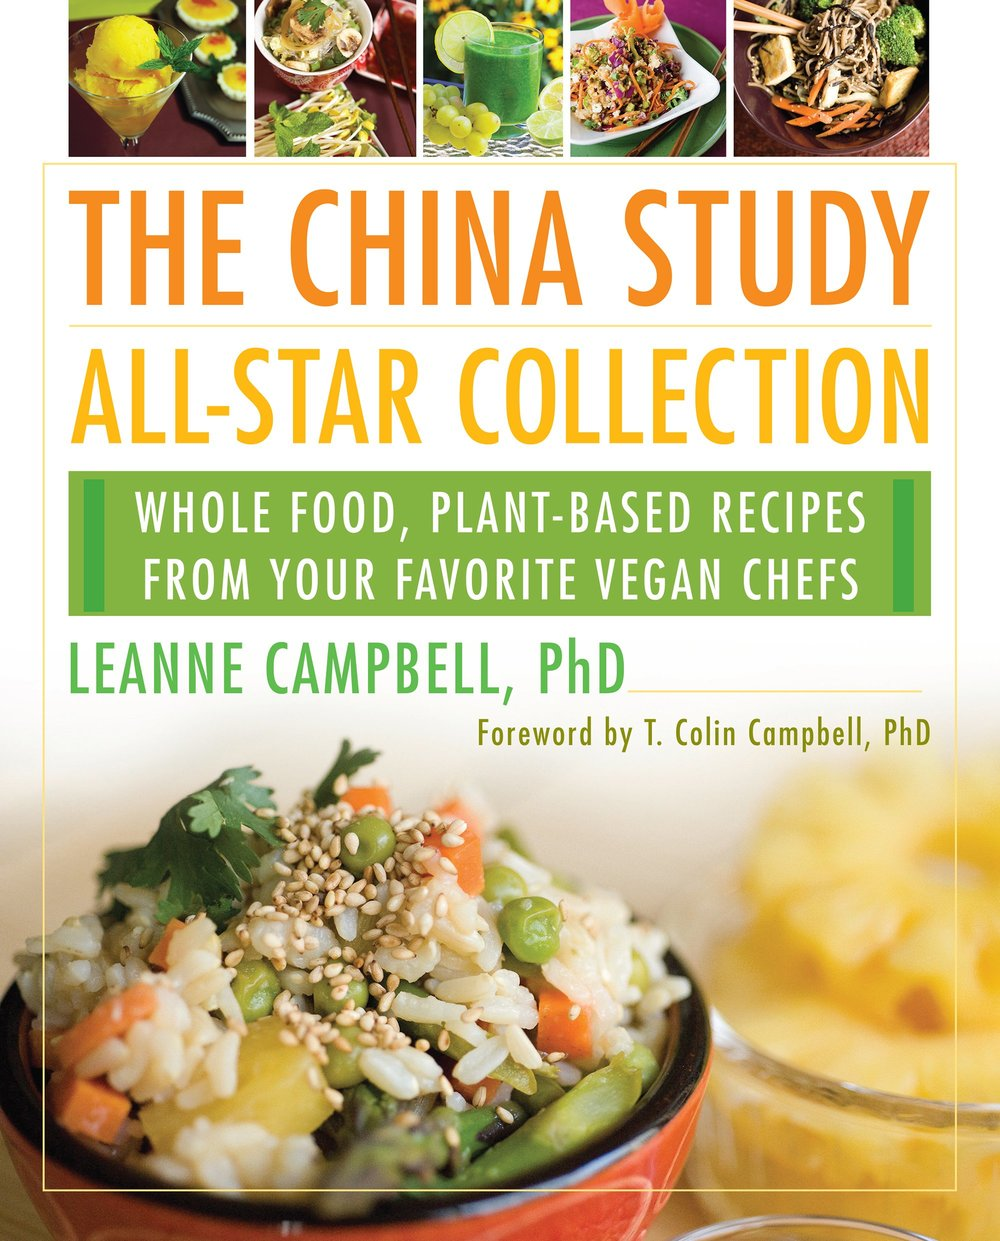 The China Study All-Star Collection by LeAnne Campbell